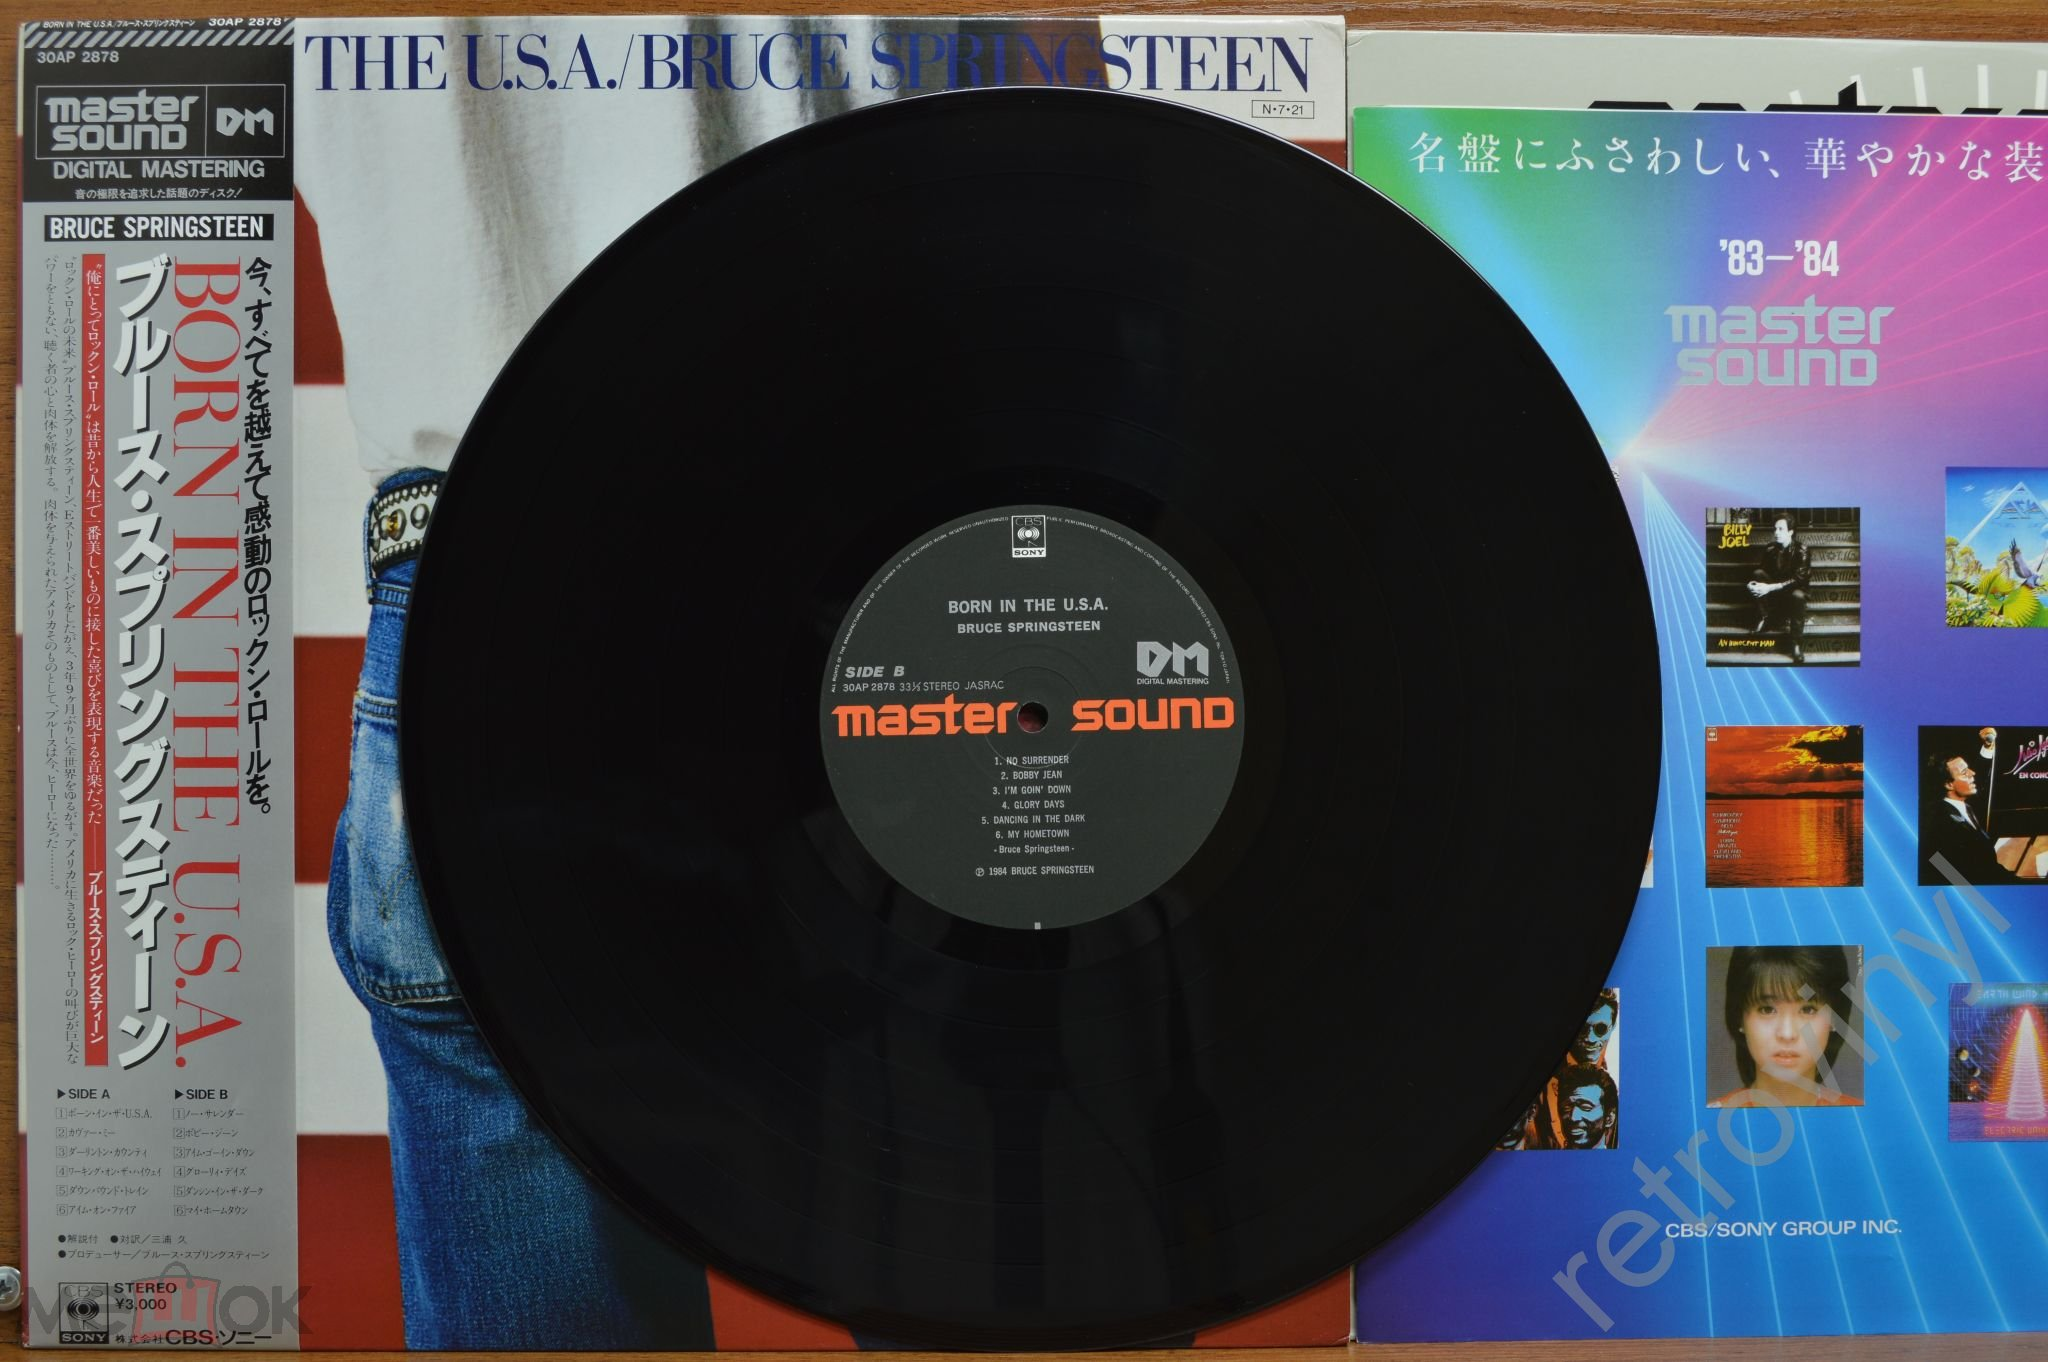 Bruce Springsteen - Born In The USA - CBS/Sony 28AP 2850 =MASTER SOUND= ORIGINAL 1984 JAPAN пресс NM